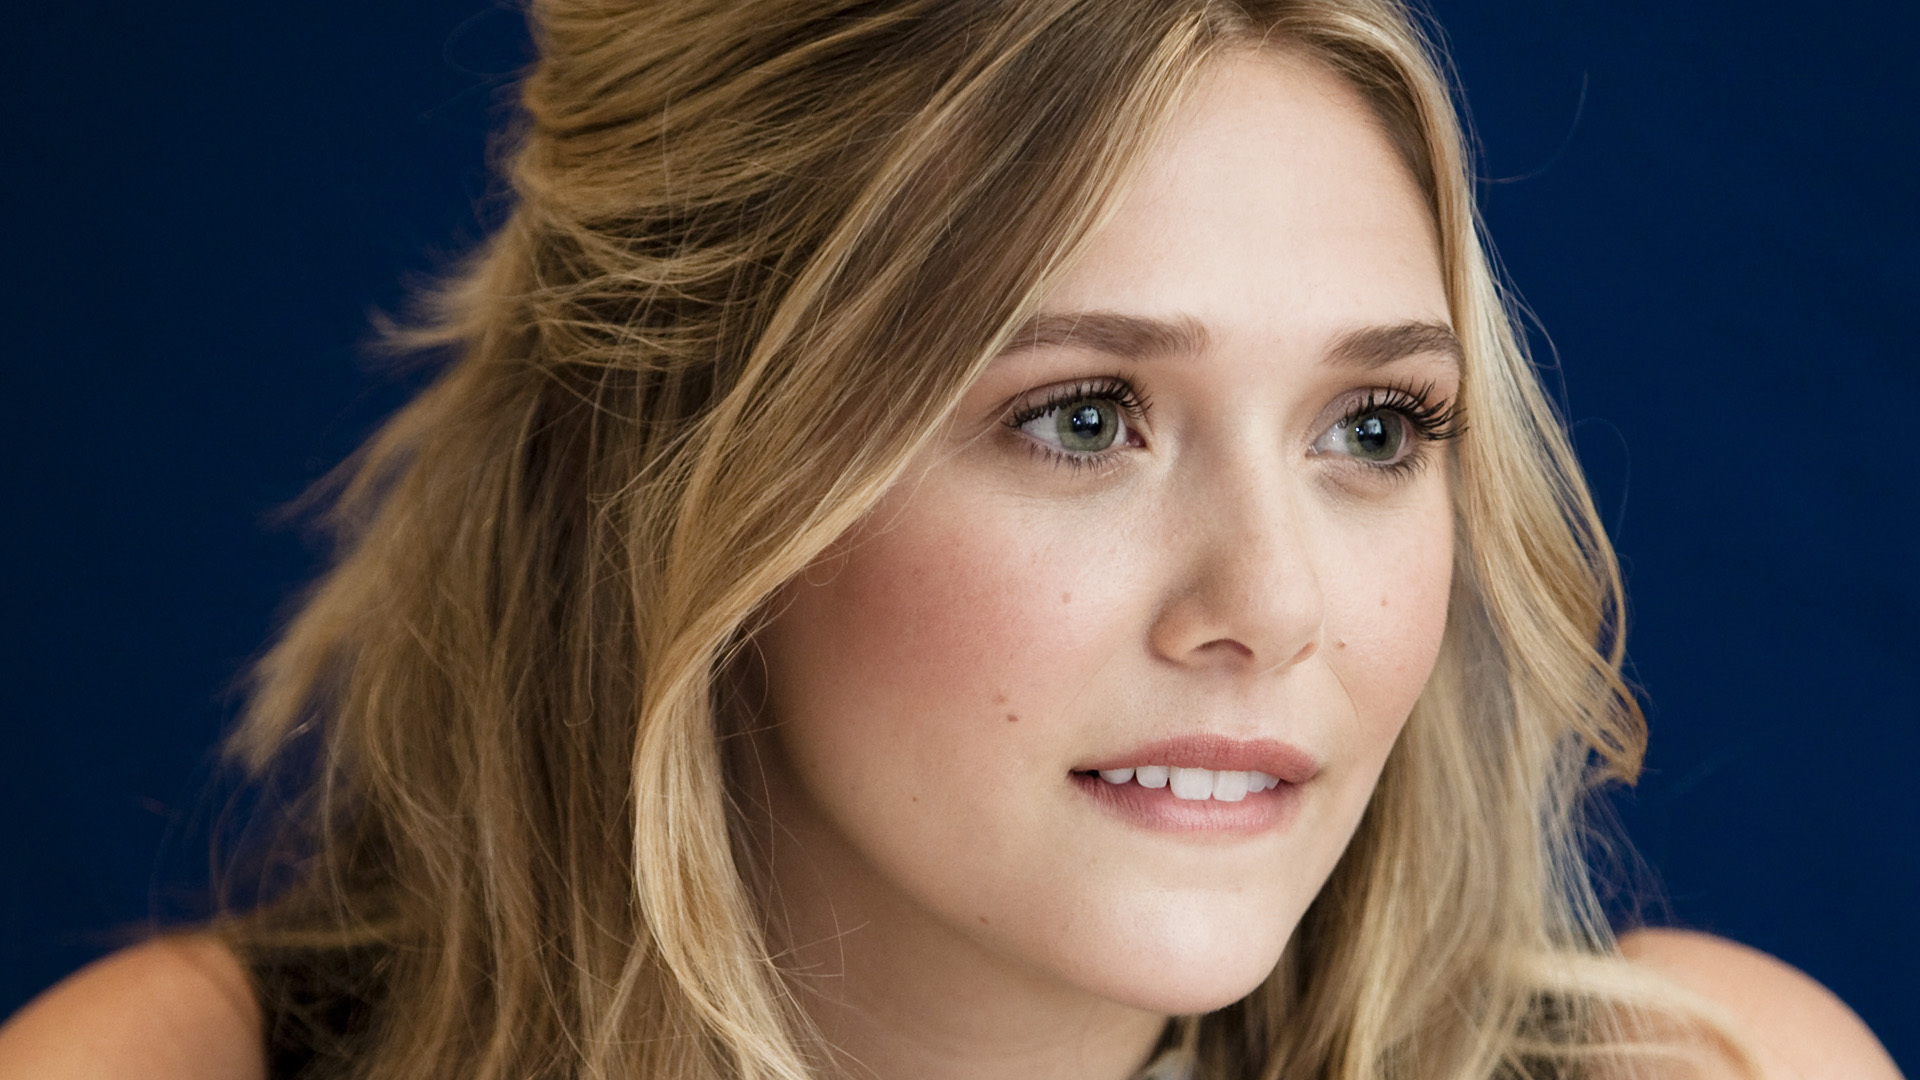 Elizabeth Olsen HD Wallpapers Images Backgrounds 1920x1080